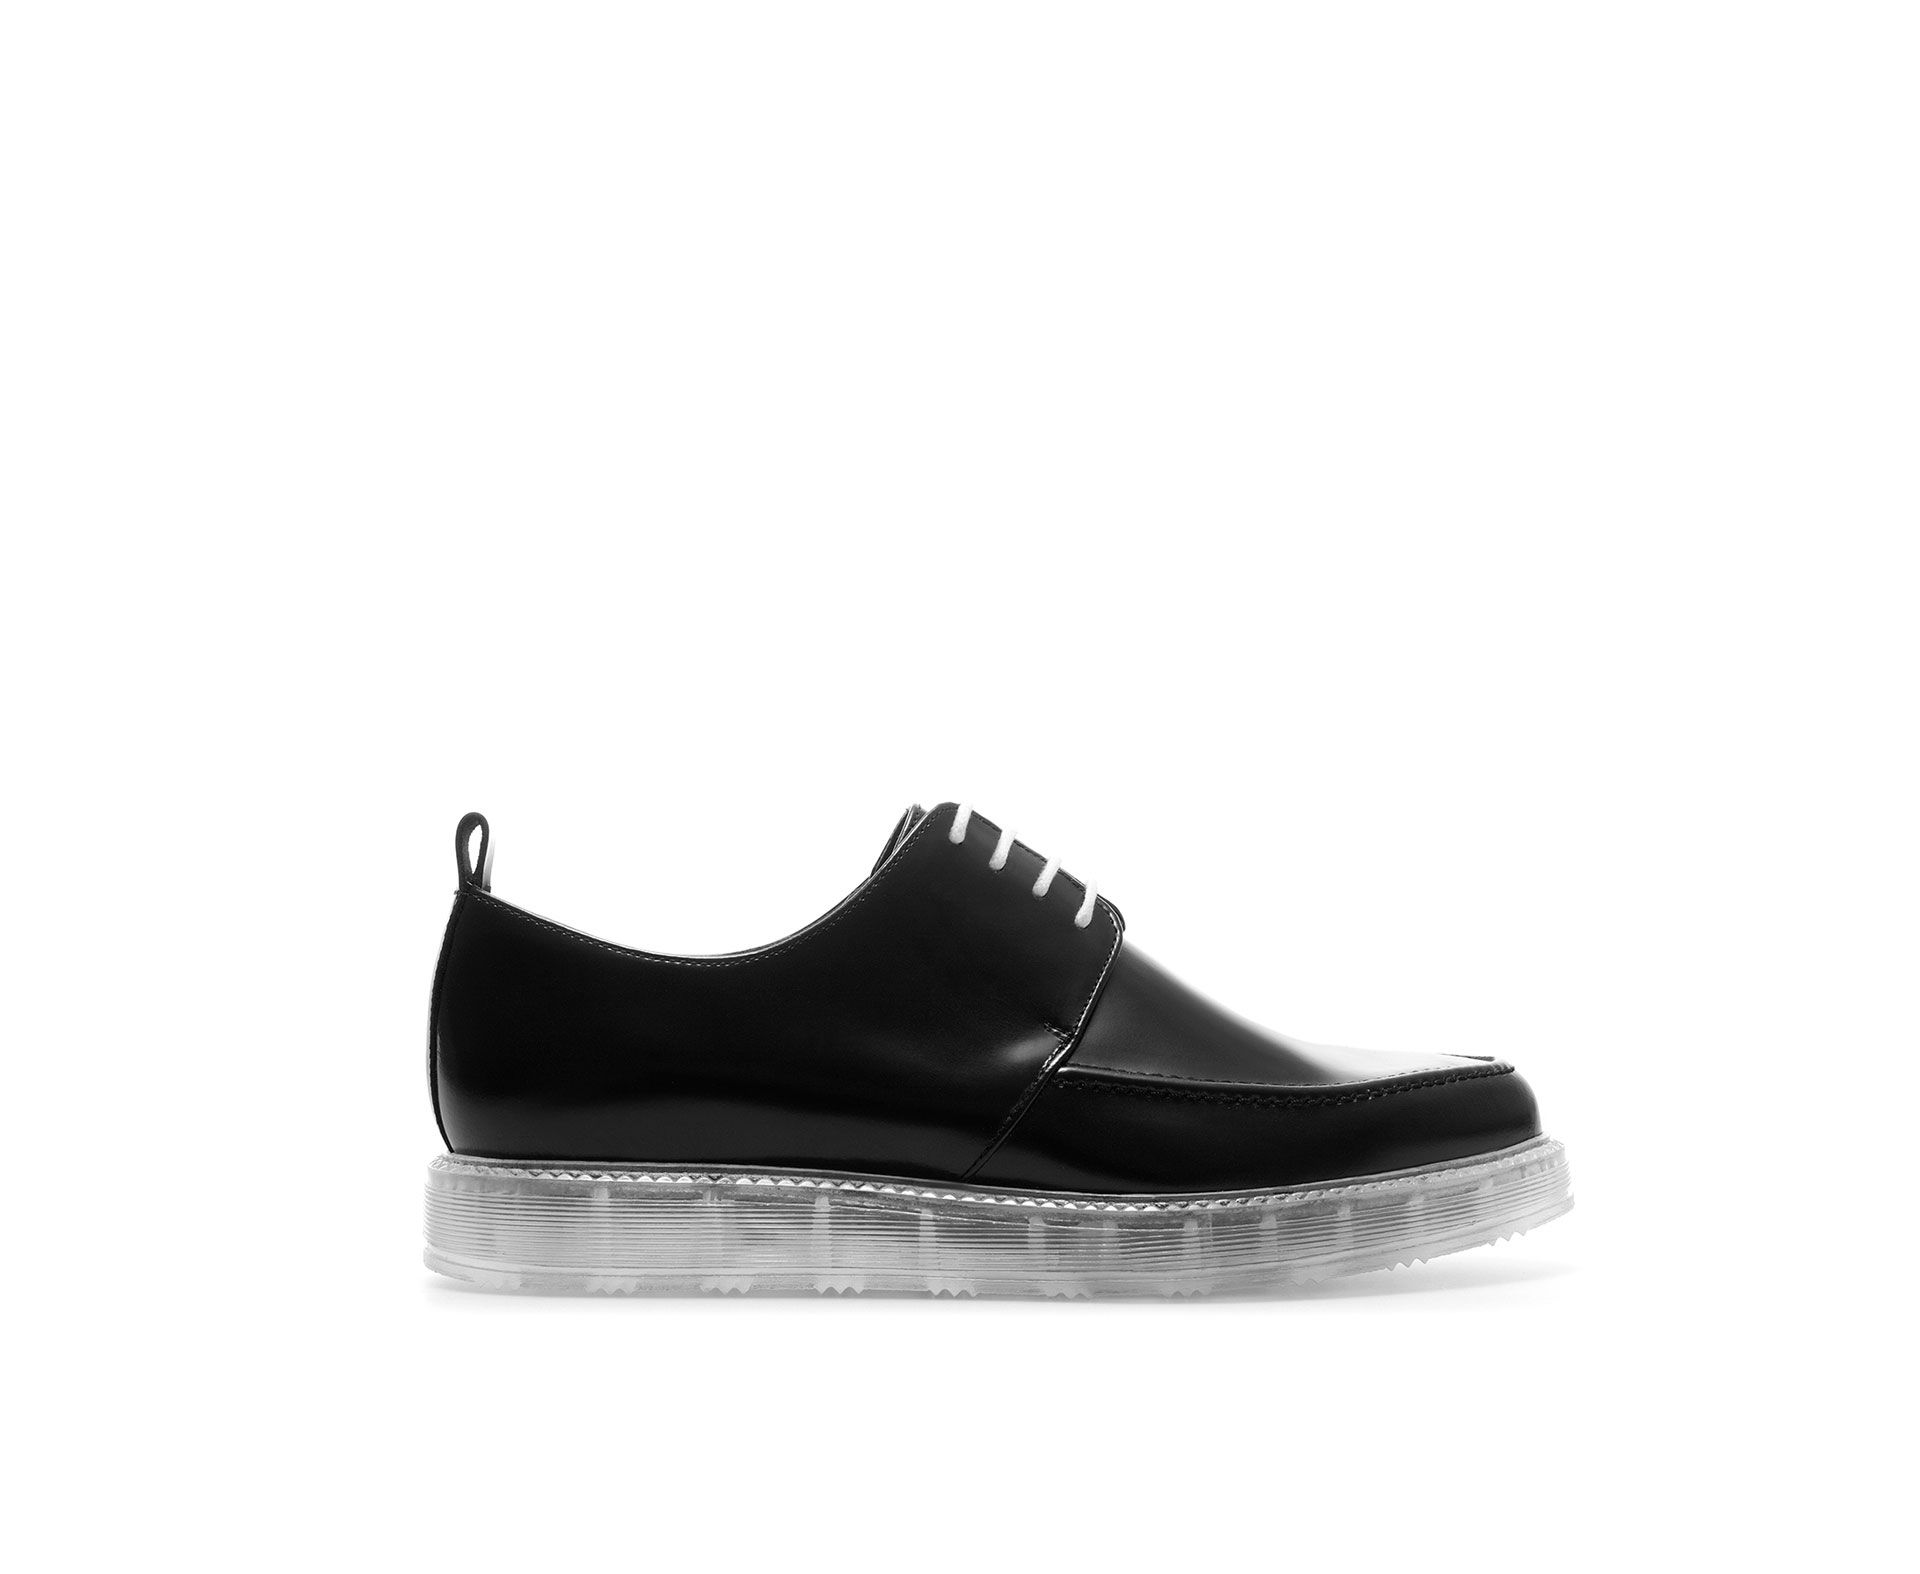 e684240ee7 LEATHER BLUCHER WITH TRANSPARENT SOLE - Shoes - TRF   ZARA United ...